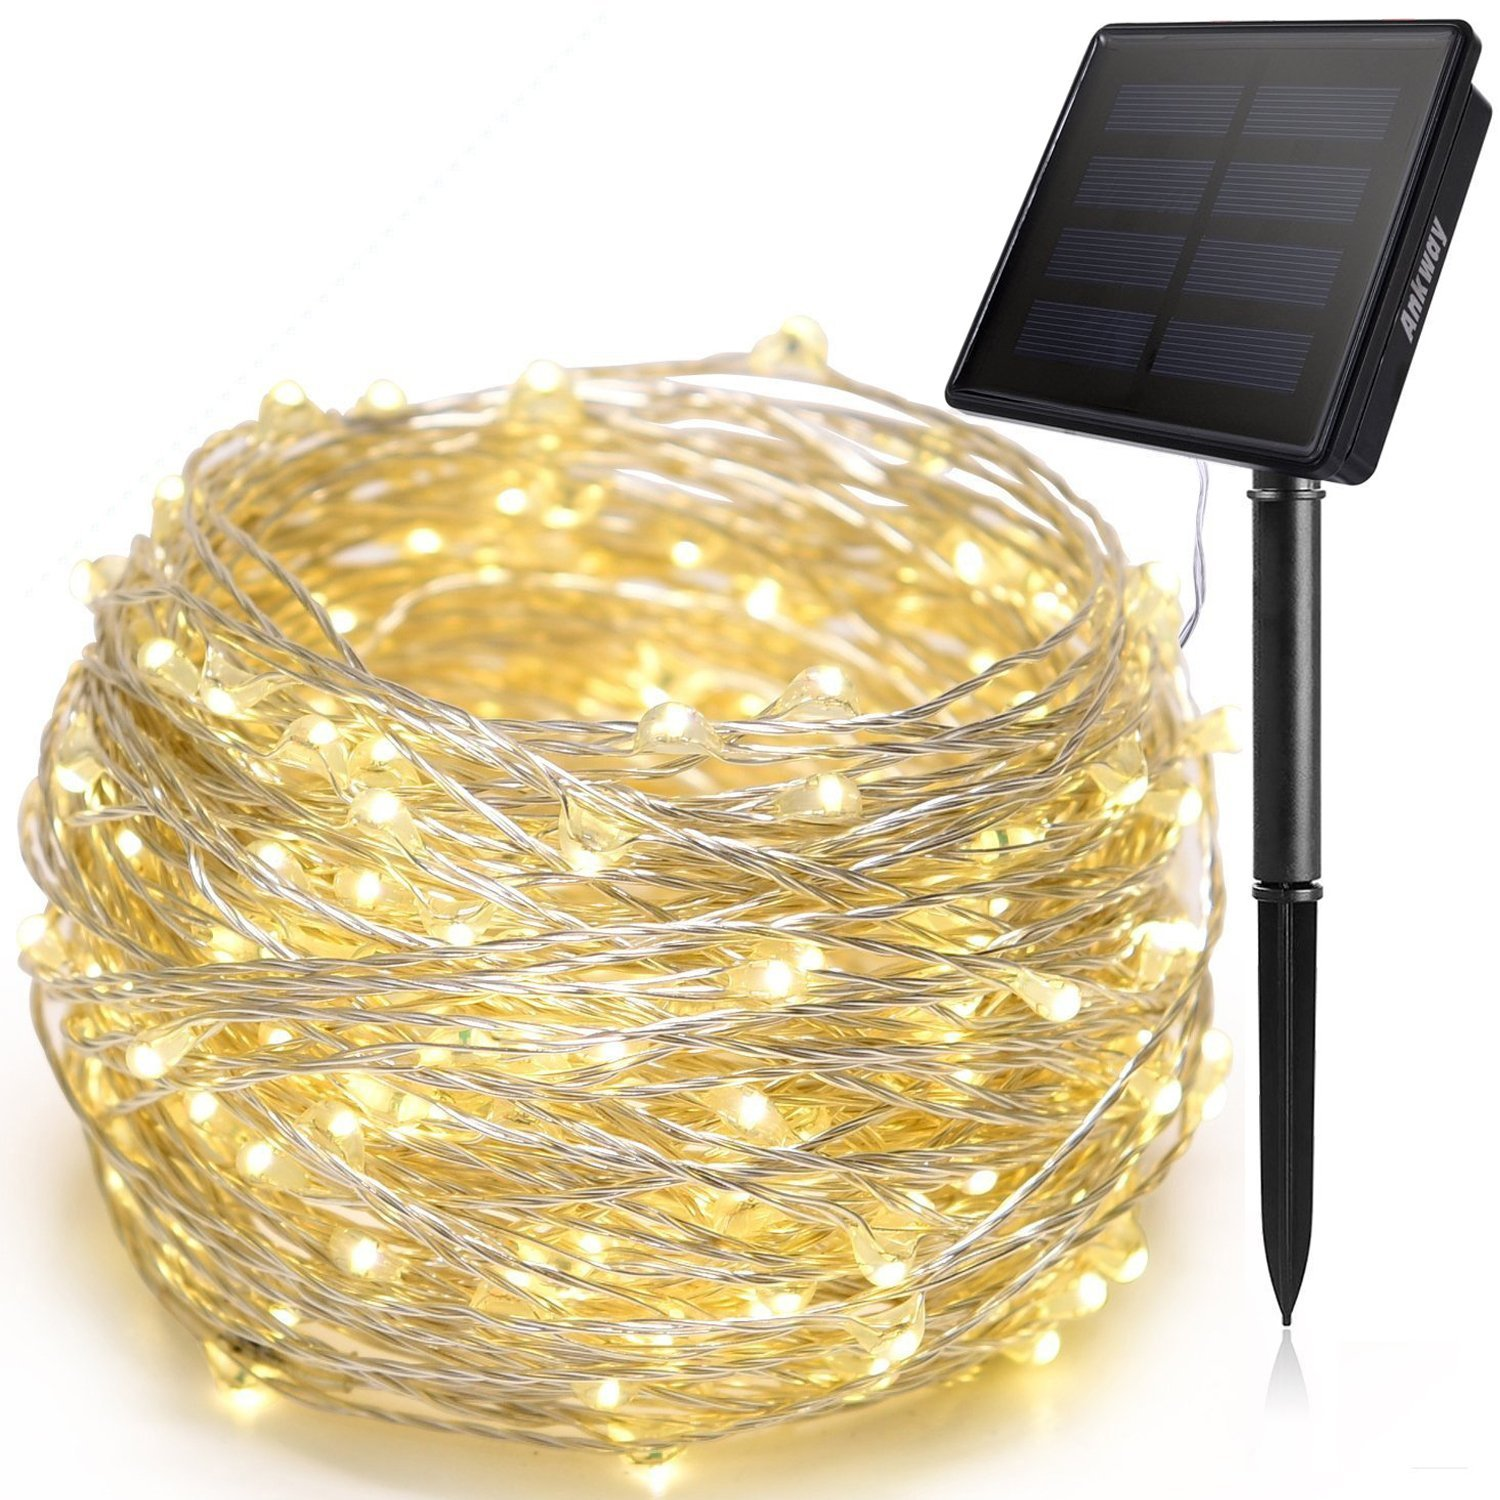 Best solar power Christmas lights - Ankway